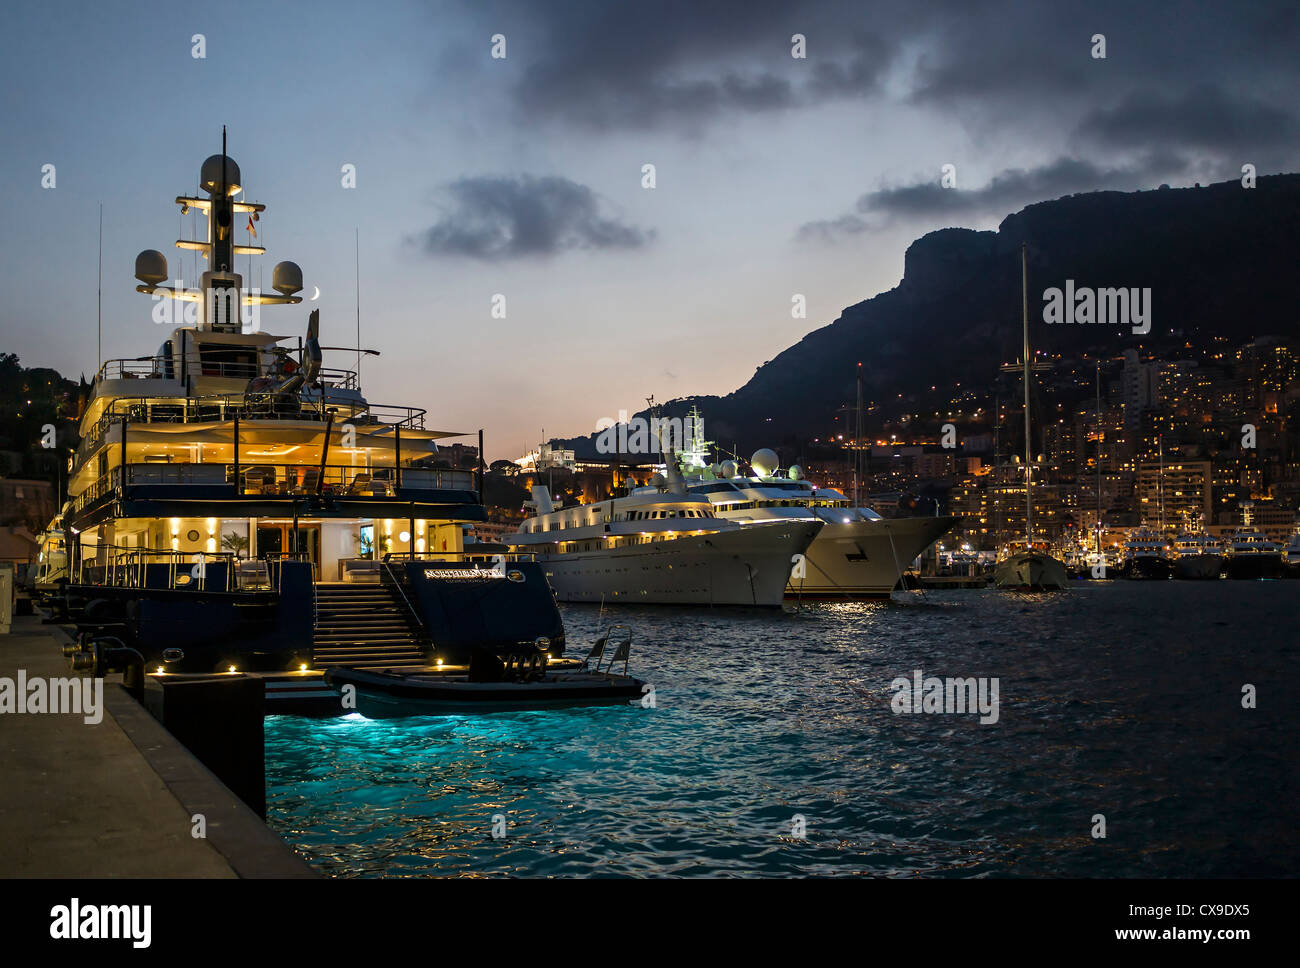 Dusk in Port Hercule, Monaco, with crescent moon above the superyacht on the left. - Stock Image